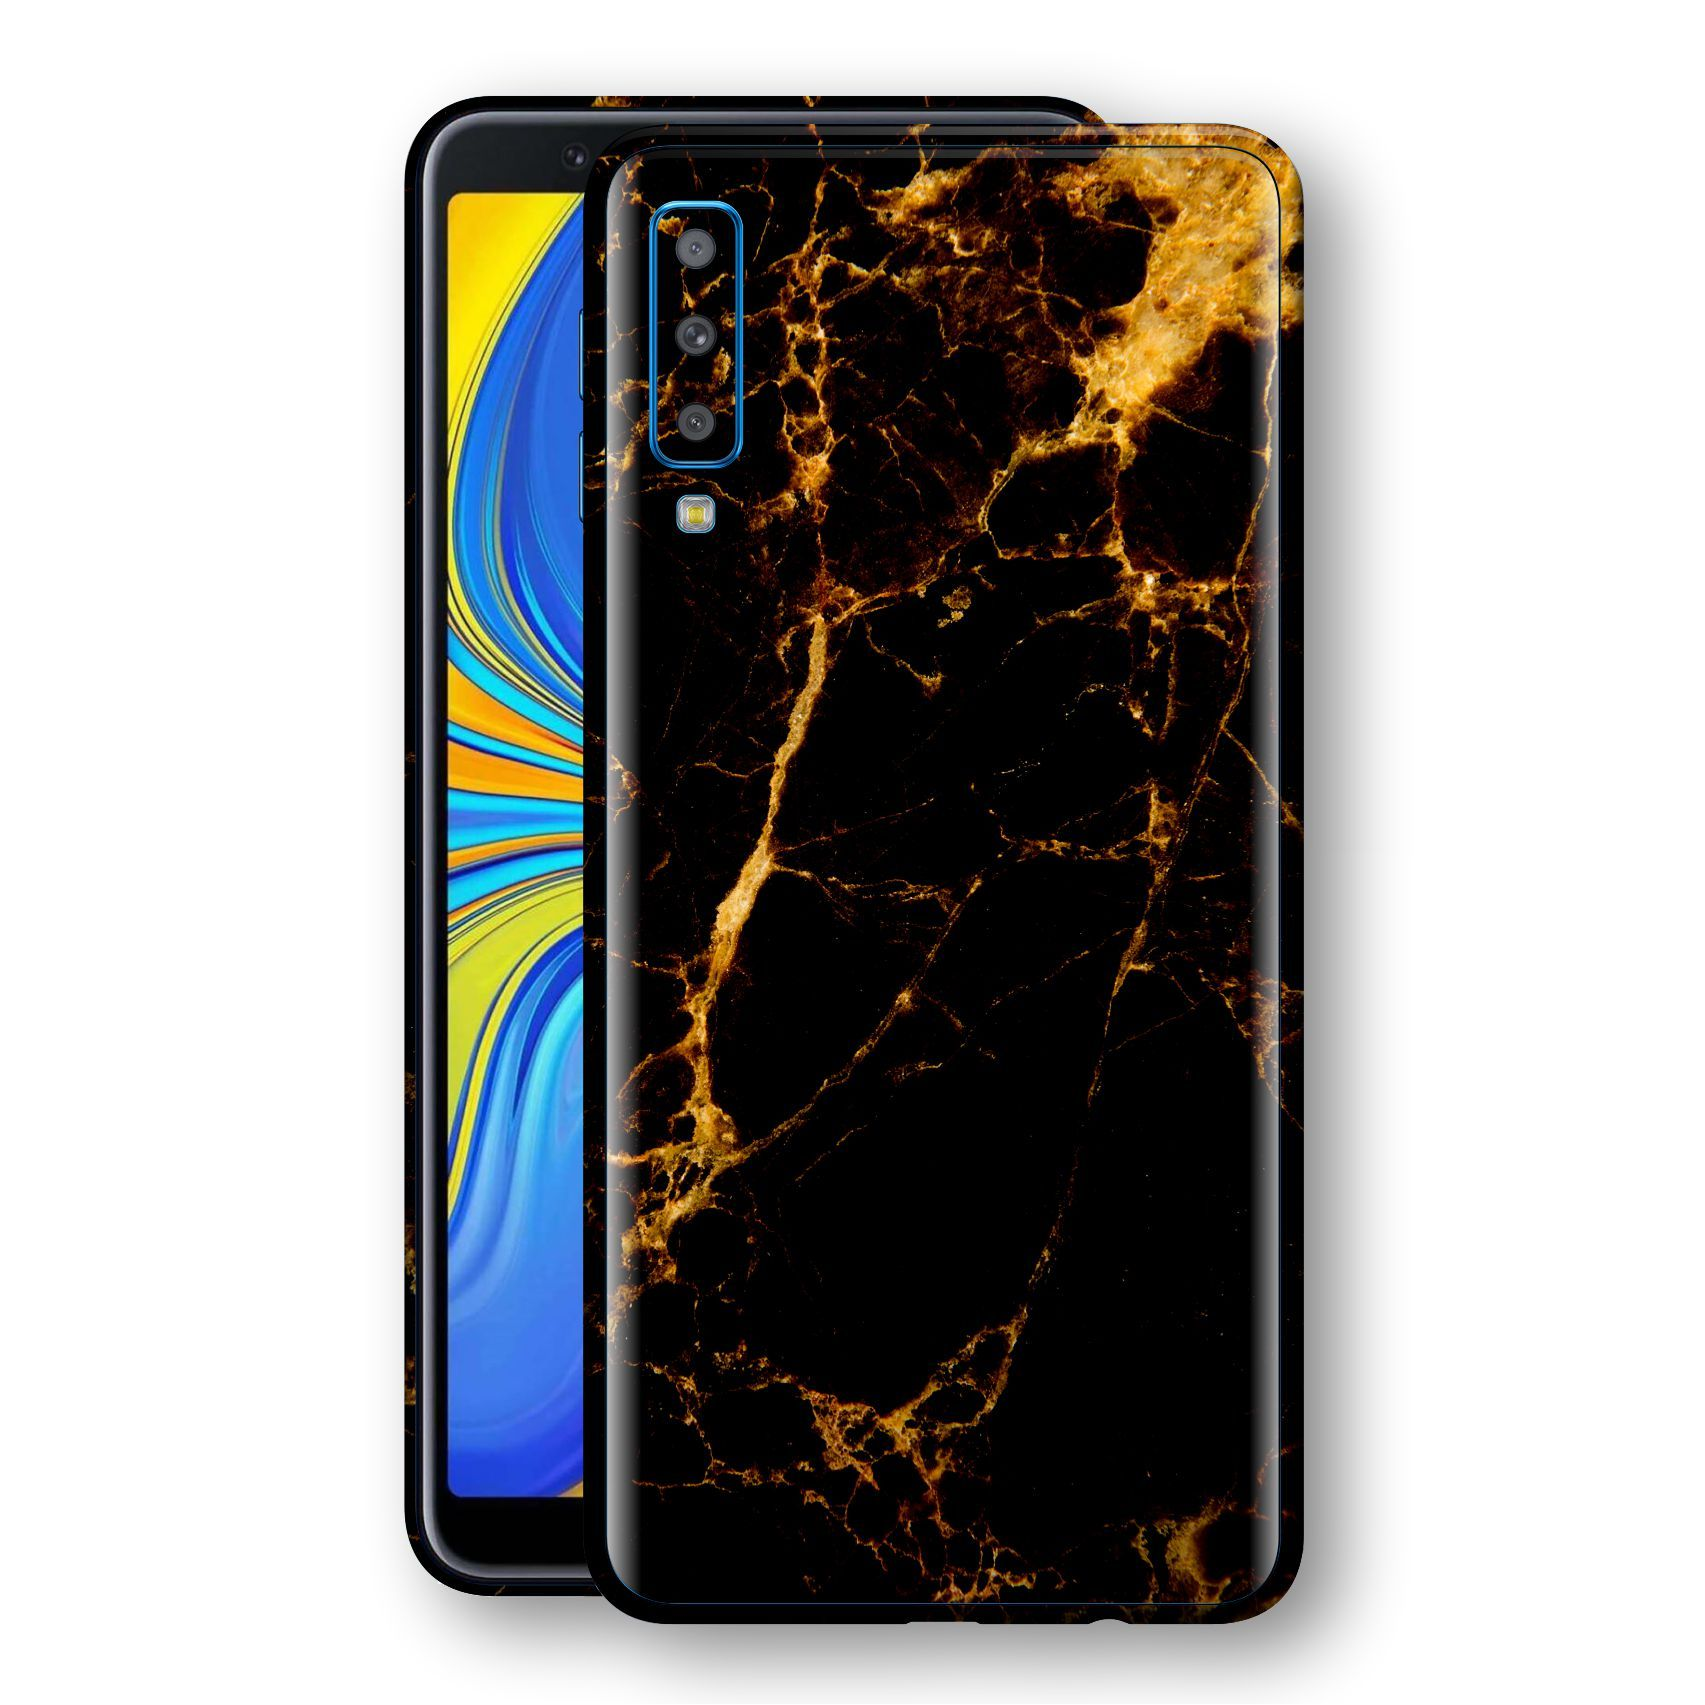 Samsung Galaxy A7 (2018) Print Custom Signature Marble Black Gold Skin Wrap Decal by EasySkinz - Design 2